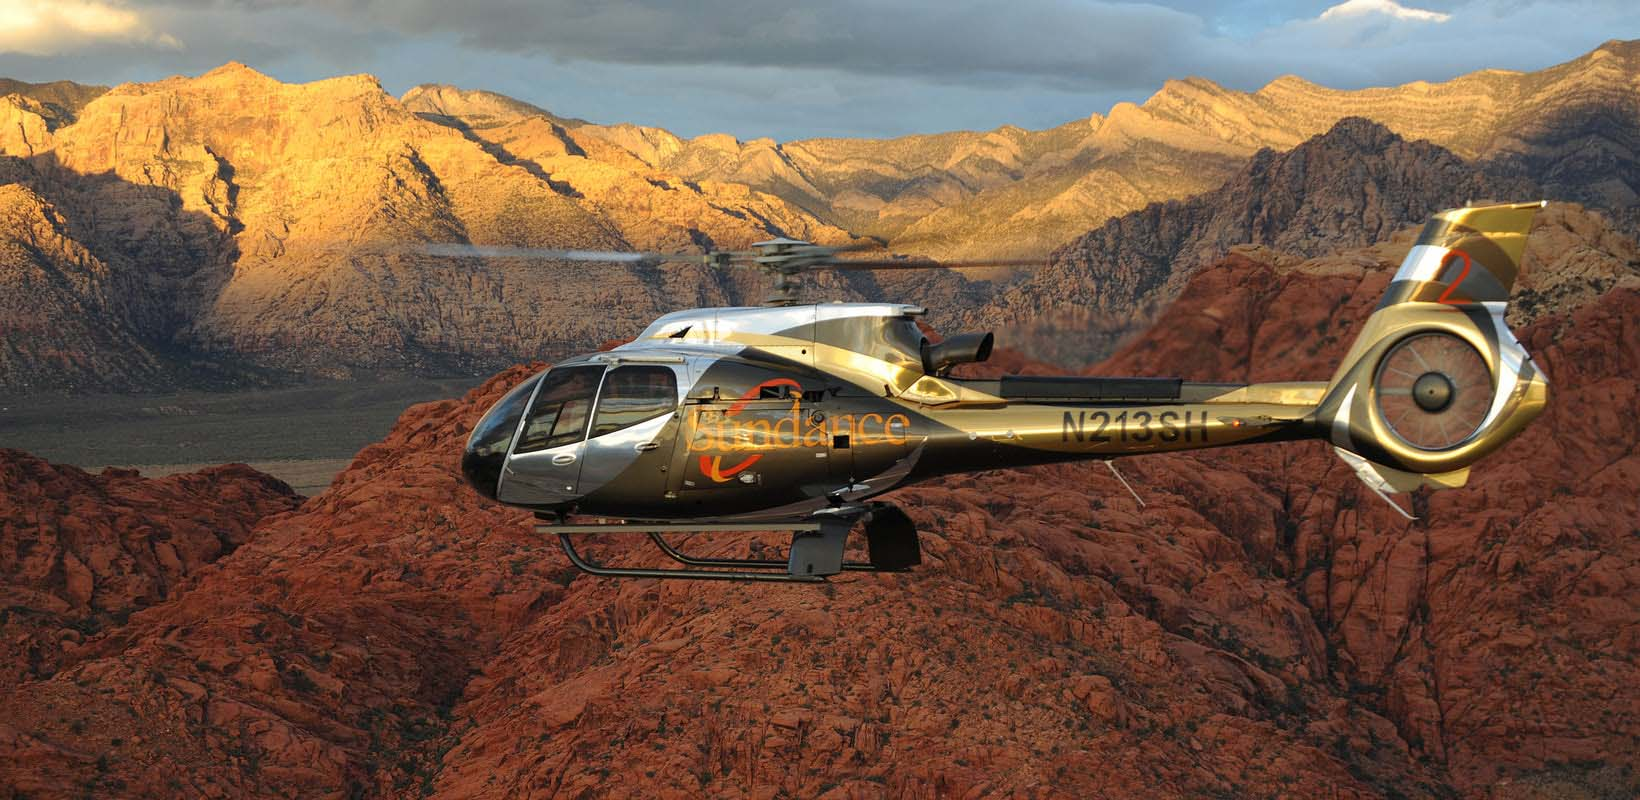 red rock canyon helicopter tour with champagne picnic